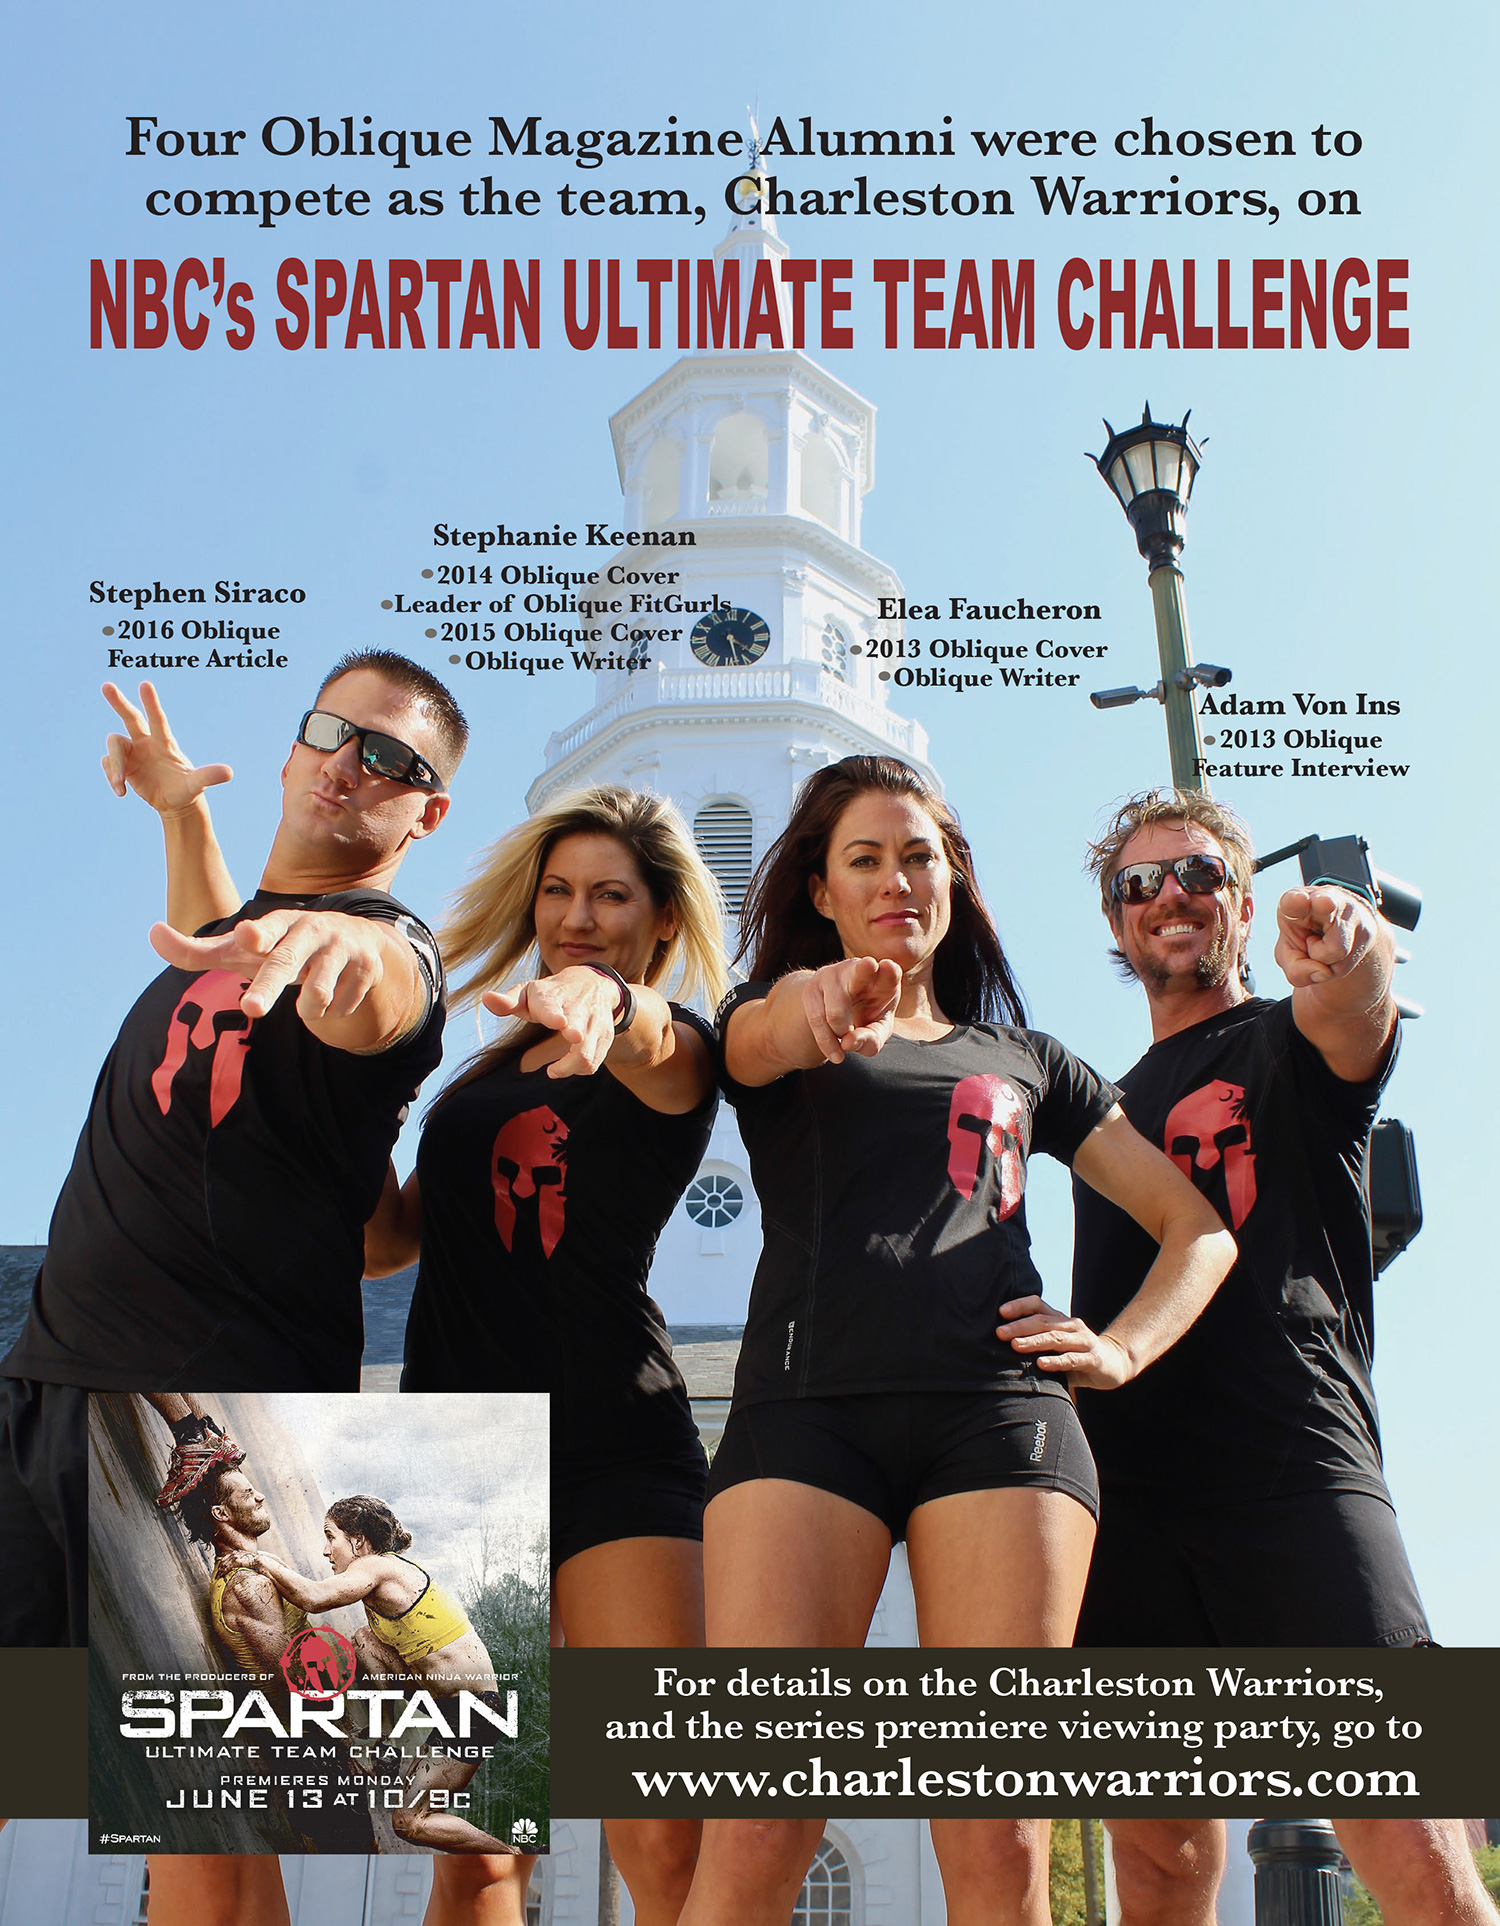 4 oblique magazine alumni team together in NBC Spartan Ultimate Team Challenge including Adam Von Ins, Elea Faucheron, Stephen Siraco and Stephanie Keenan